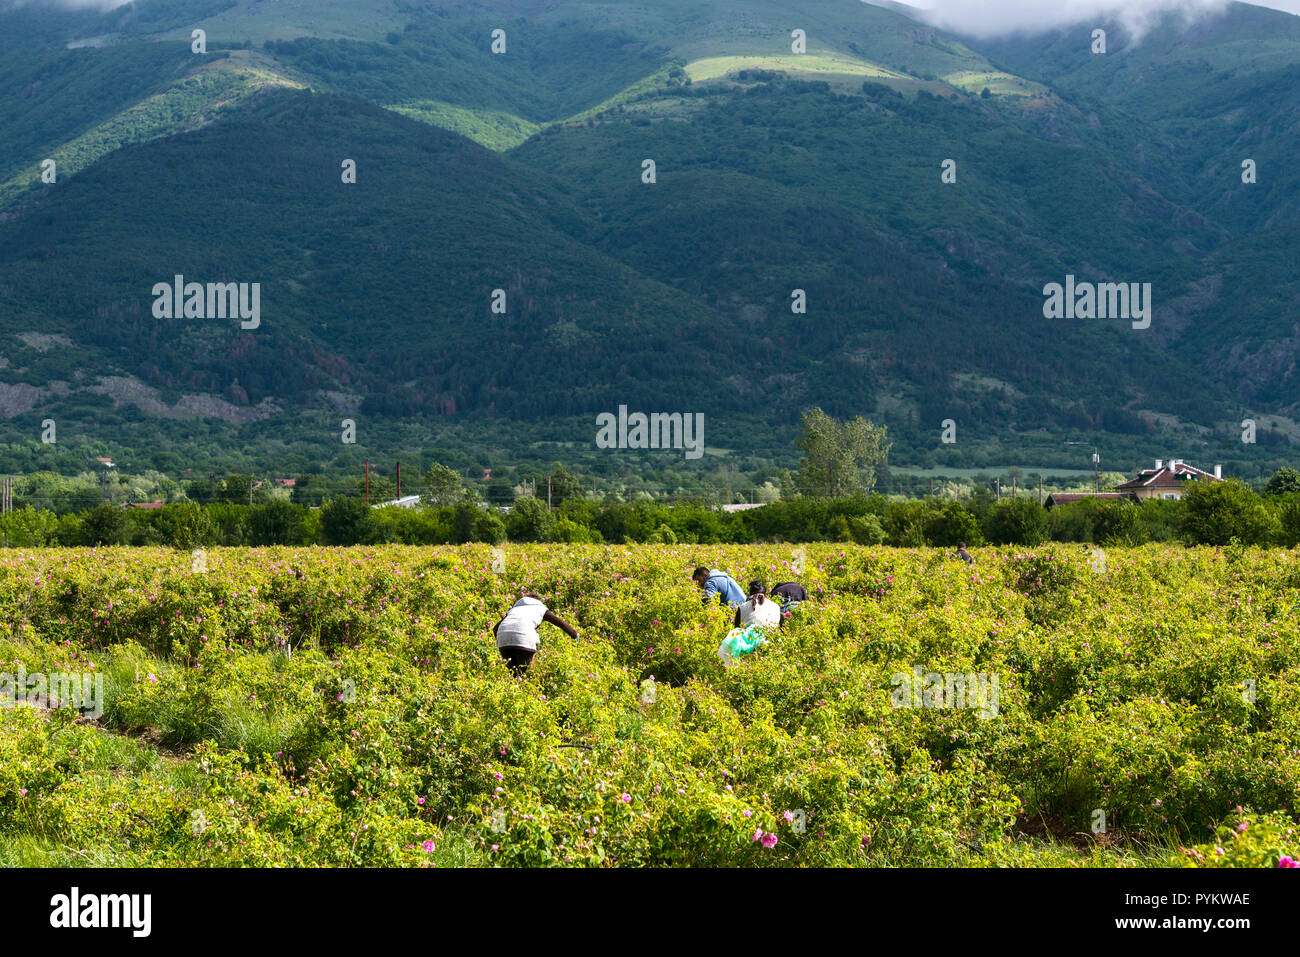 BULGARIA, VALLEY OF ROSES,. Workers plucking rose petals for rose oil production near Kazanlak - Stock Image